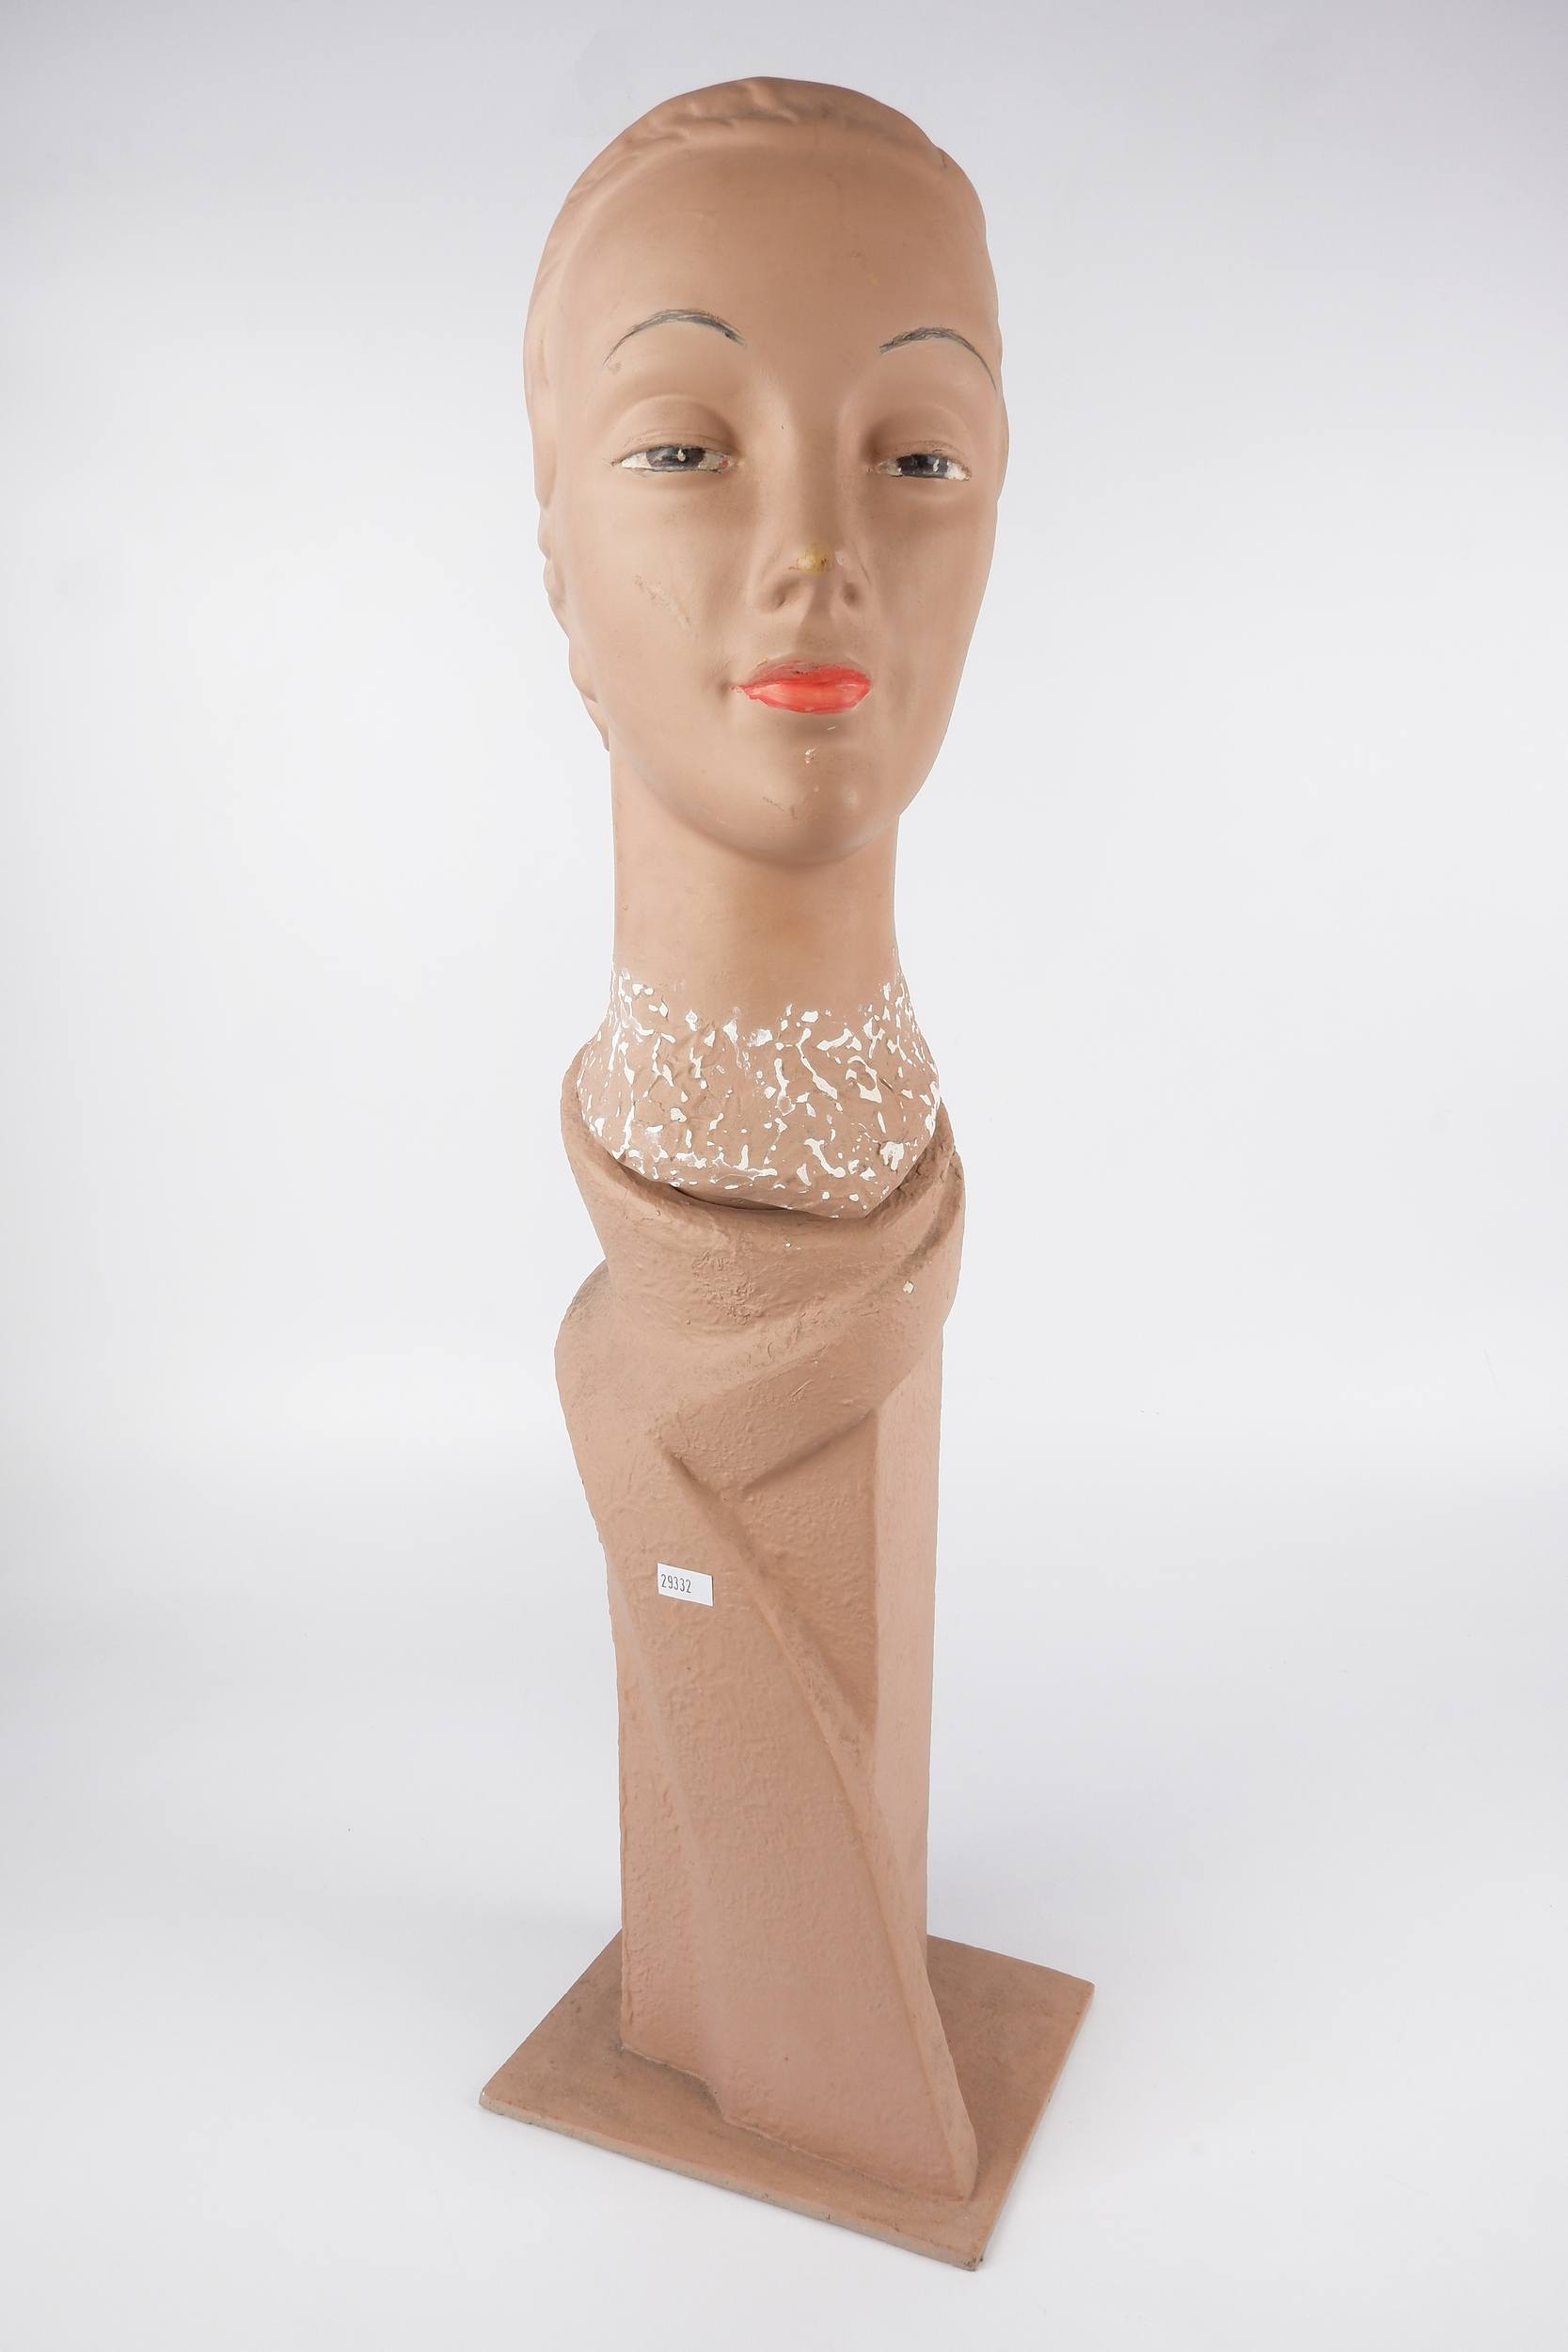 'Art Deco Painted Plaster Female Mannequin Head, Circa 1940s'